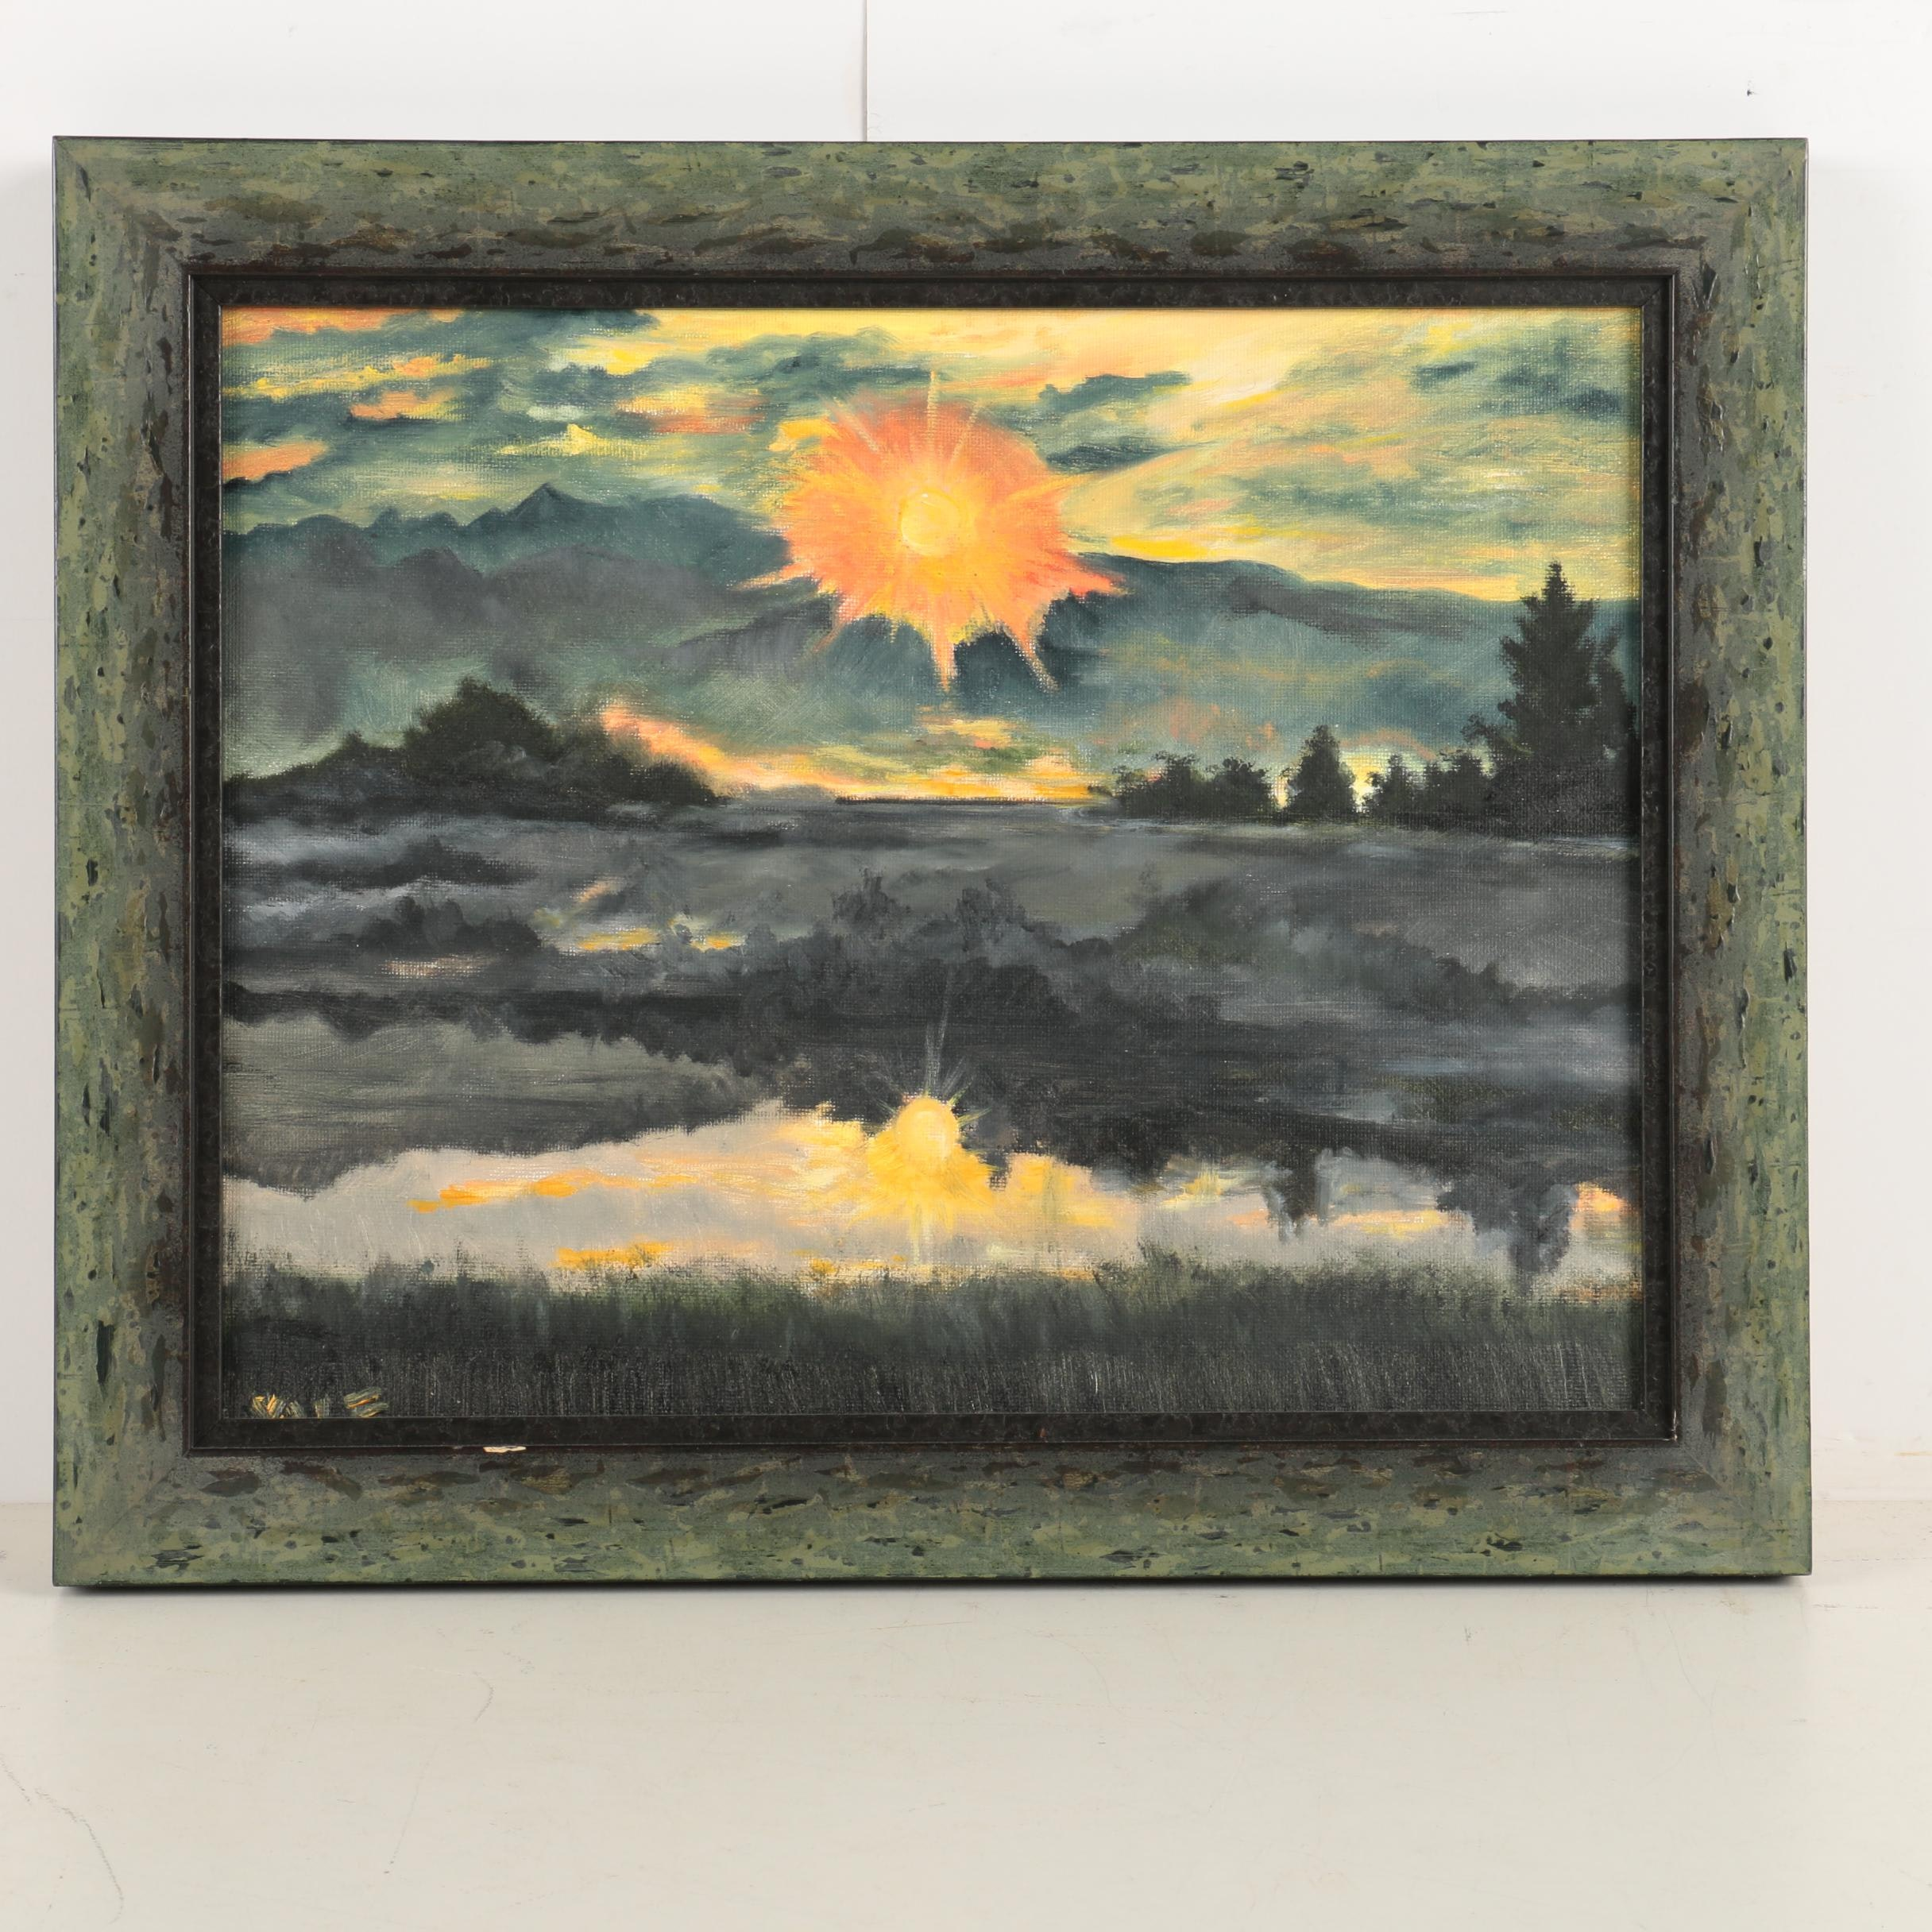 Signed Oil on Canvas Board Landscape Painting of a Sunset